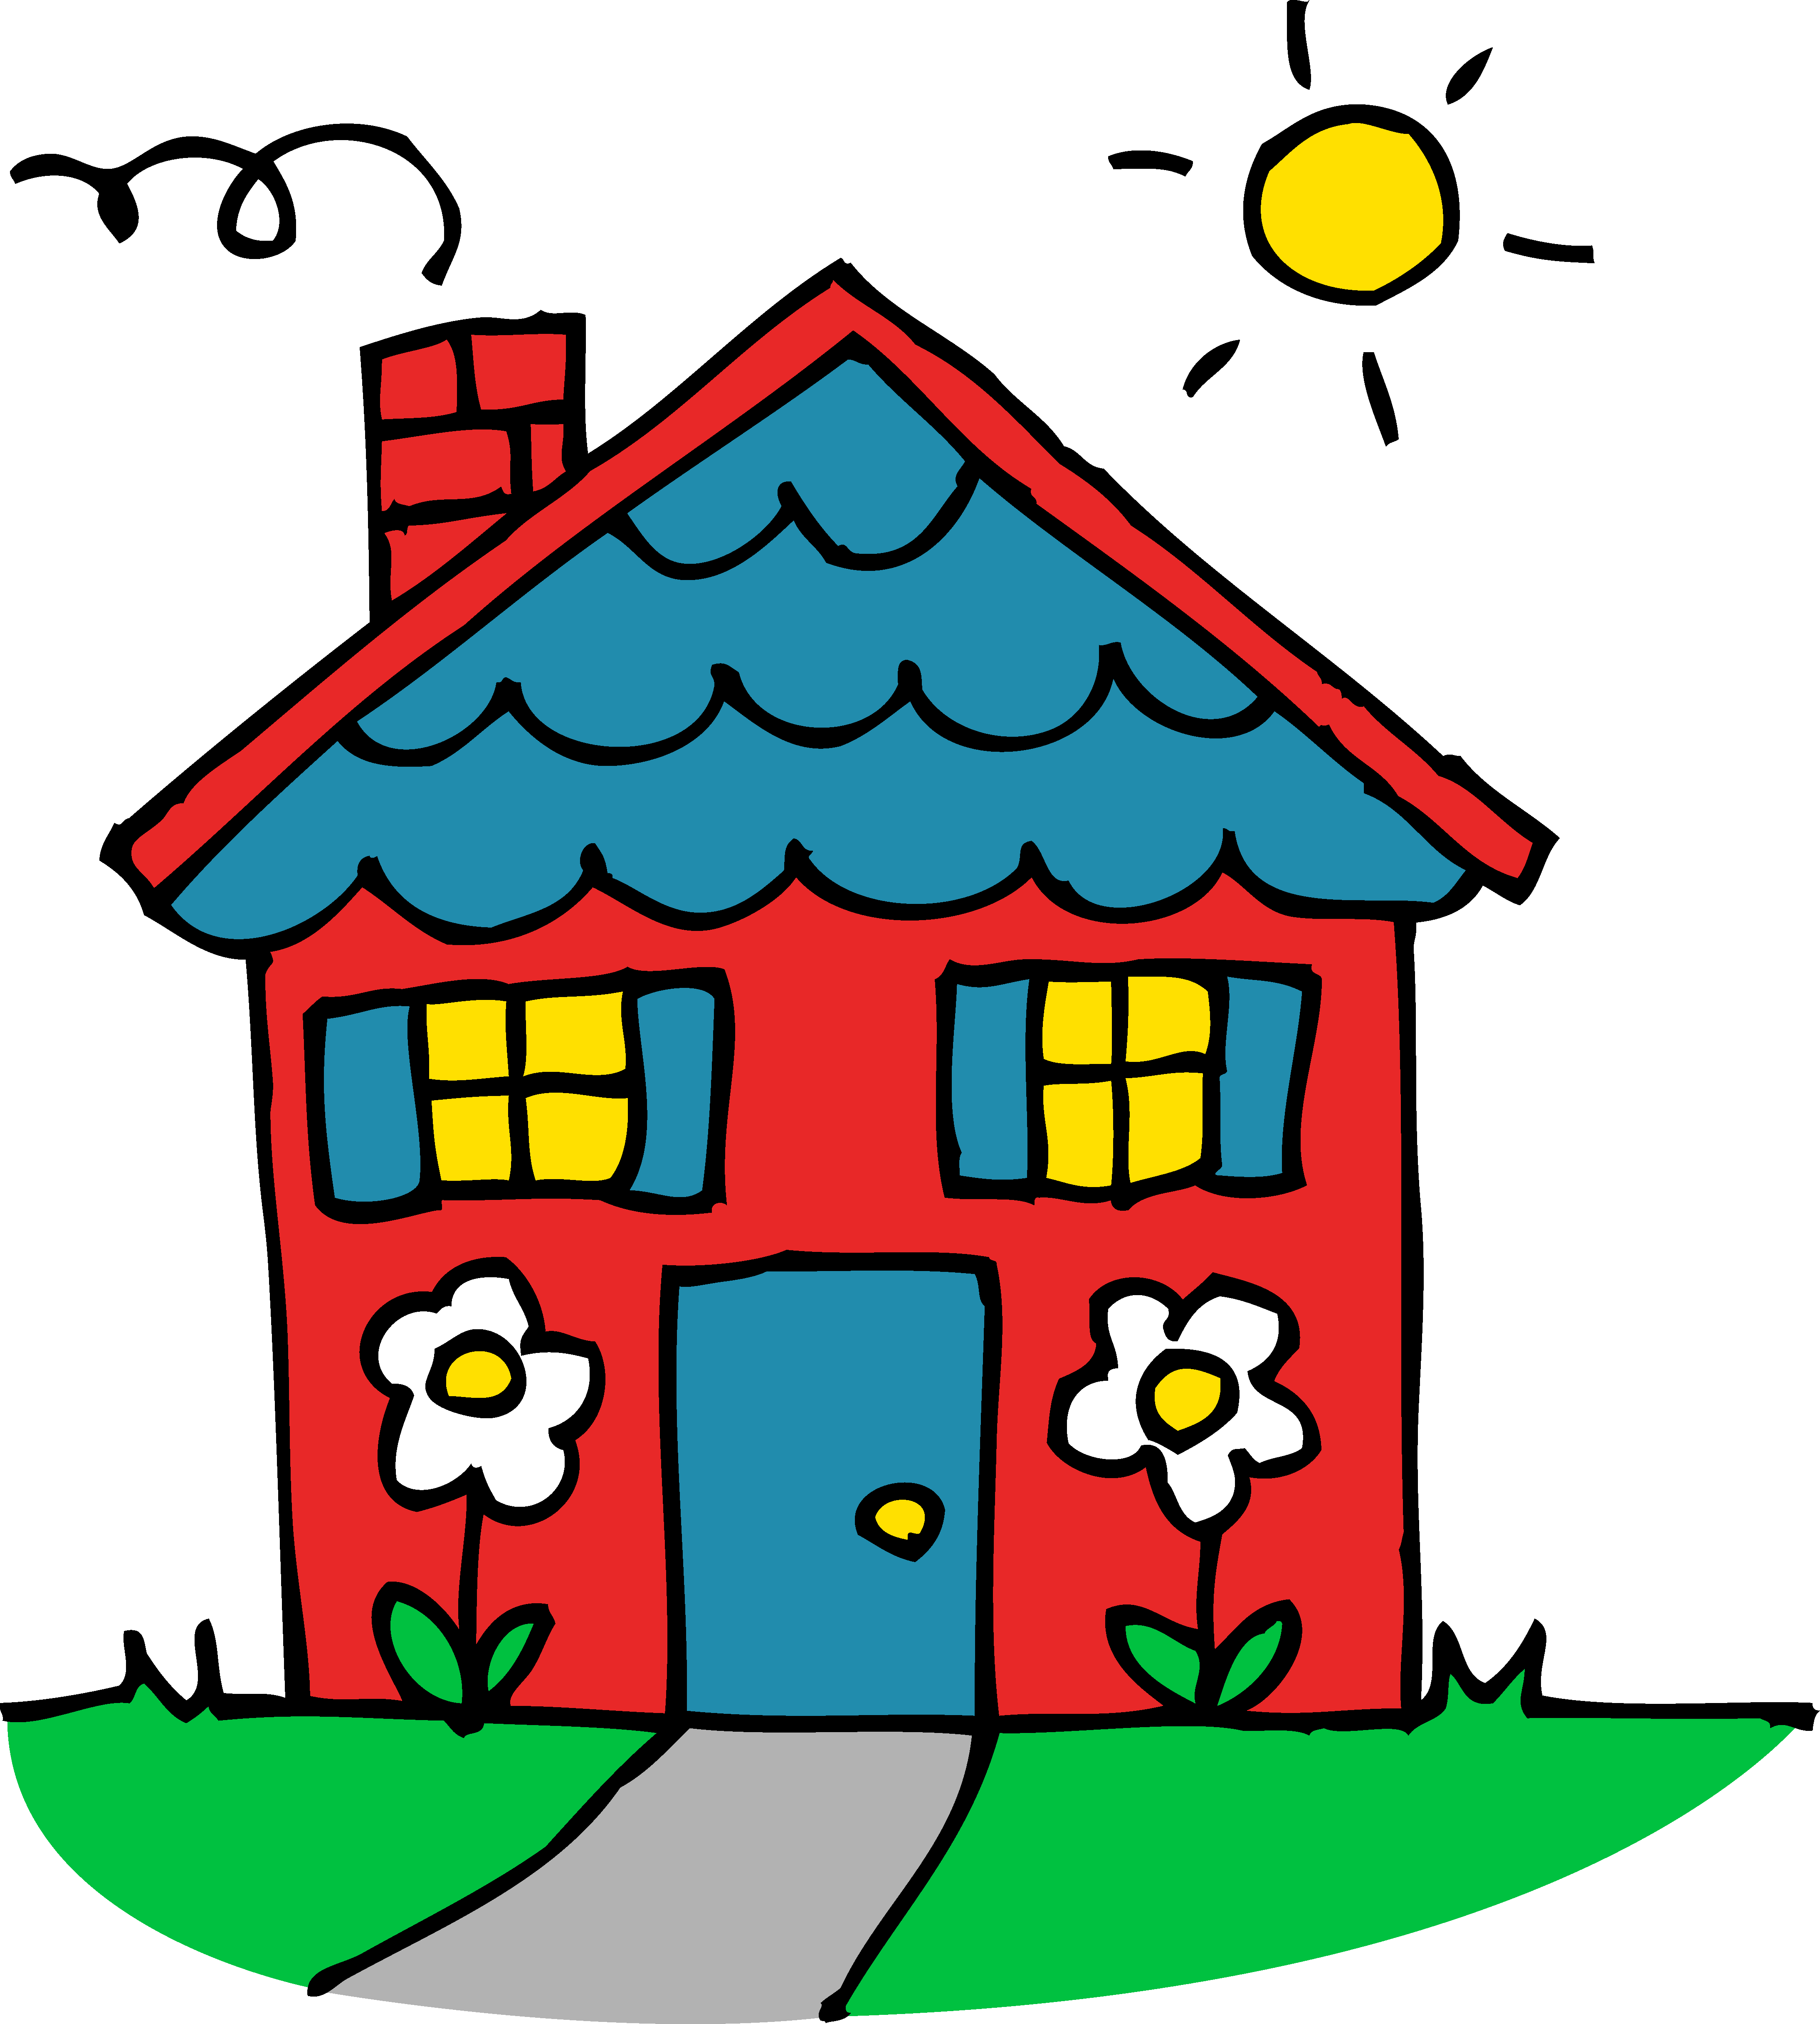 house clipart - House Image Clipart